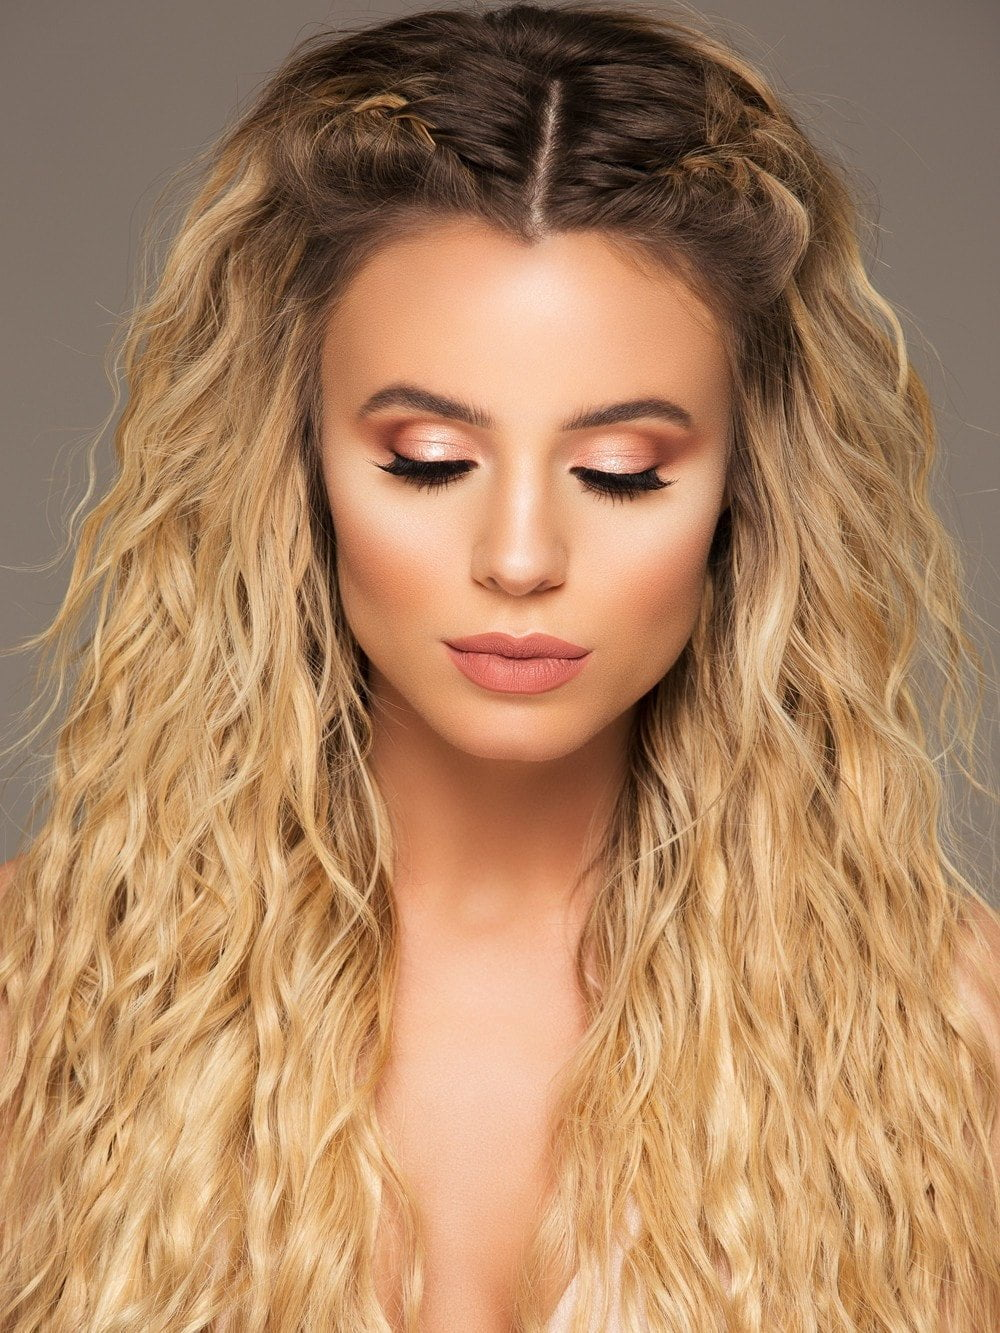 20 human hair extension kit 10 piece by hairdo wigs the create mermaid hair we used the 20 human hair extensions from hairdo pmusecretfo Images